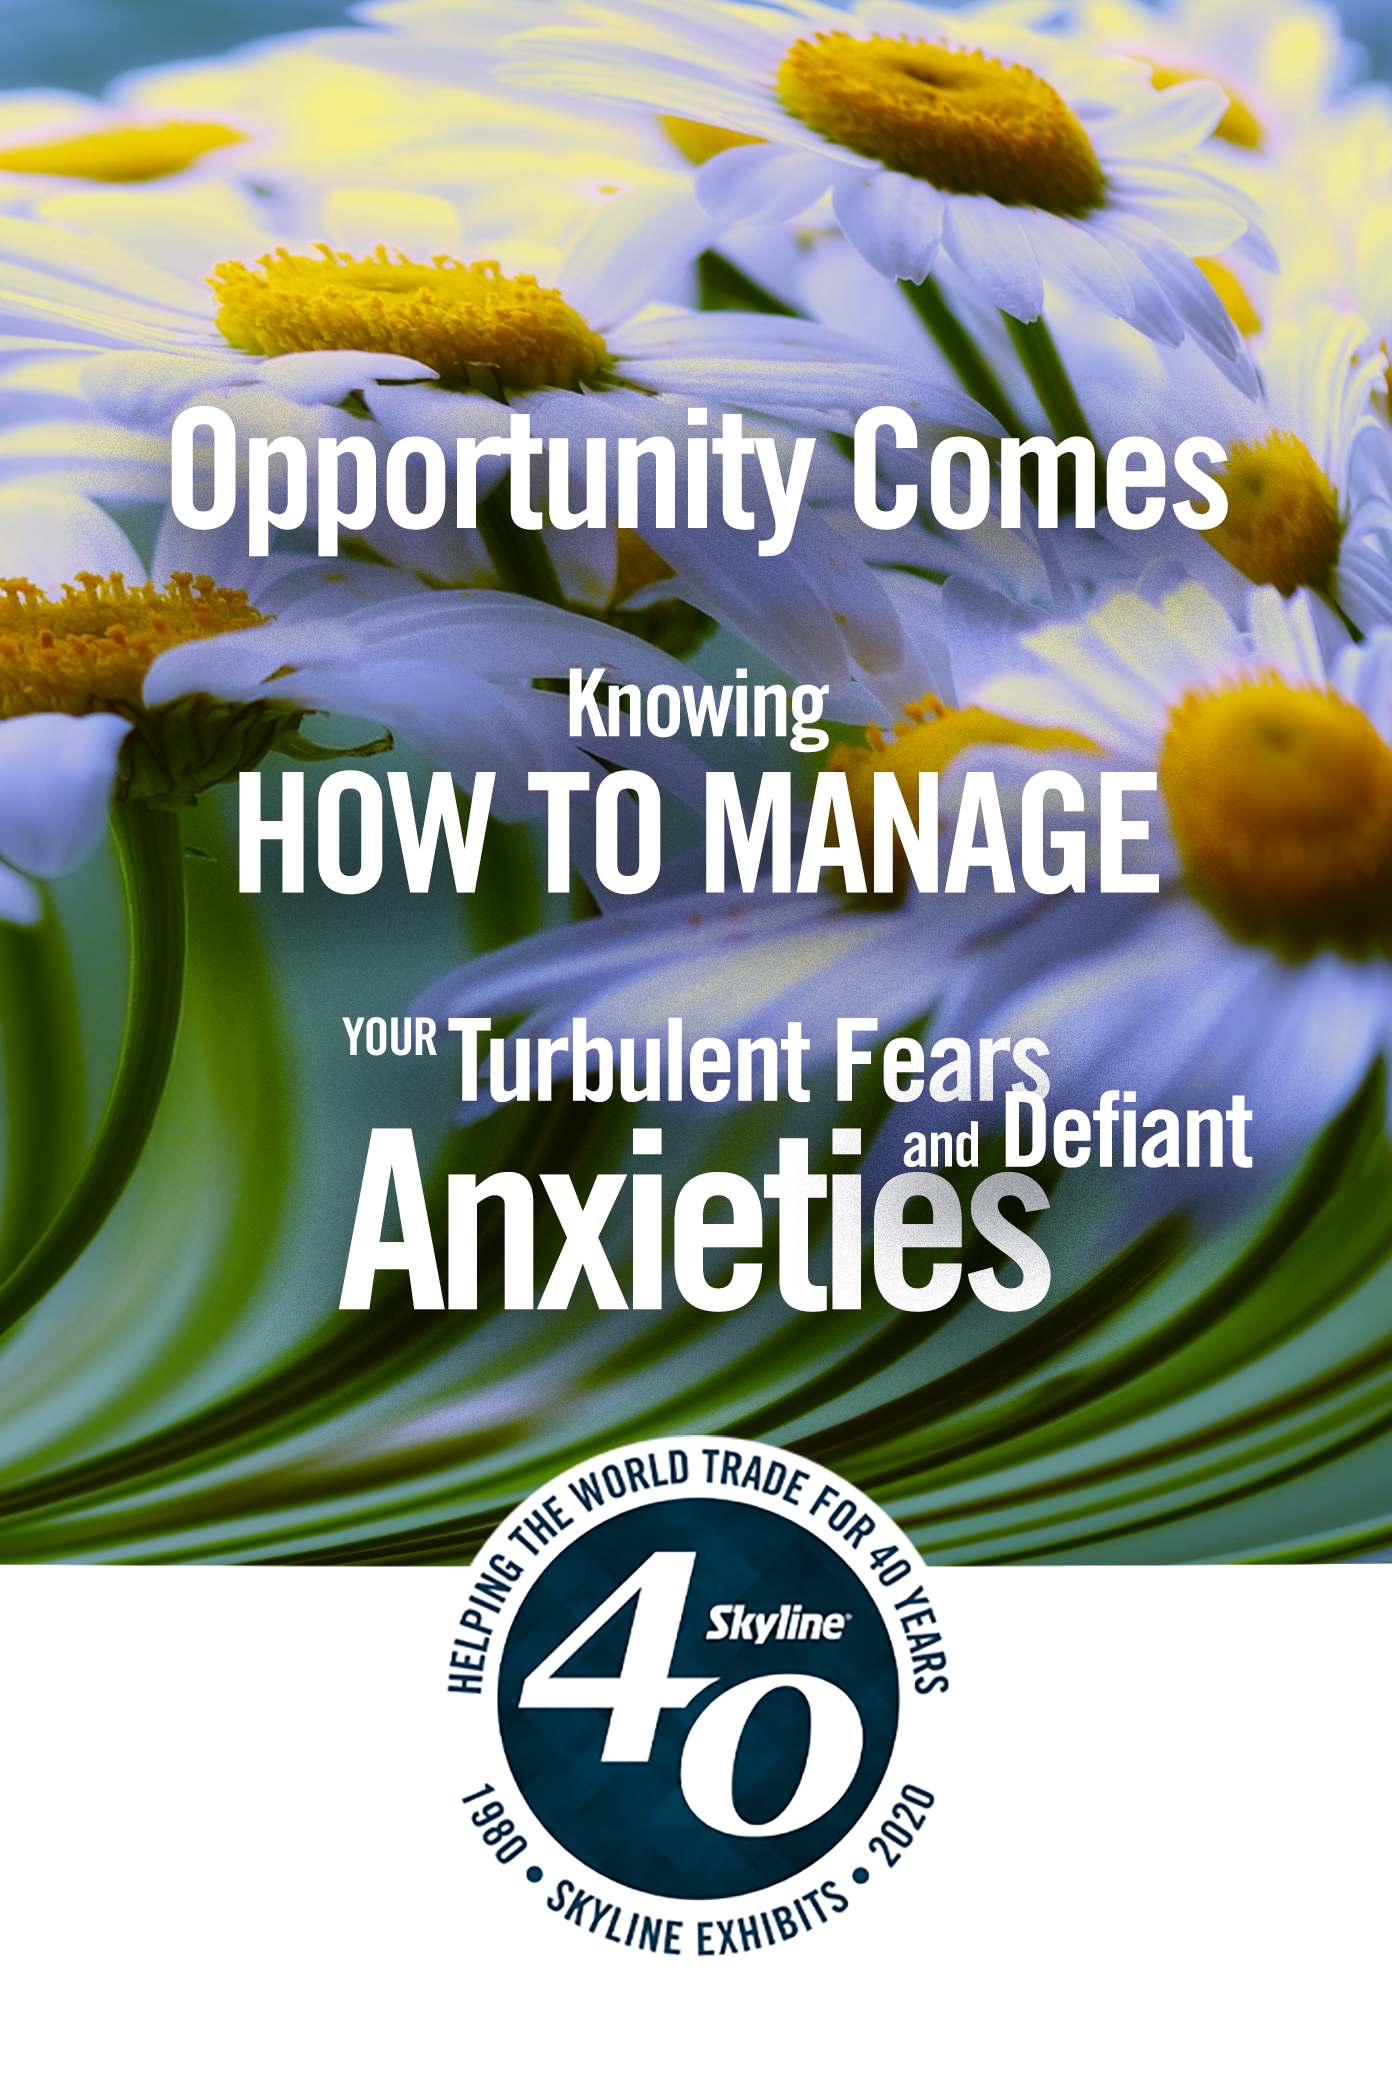 opportunity comes knowing how to manage turbulent fears and defiant anxieties